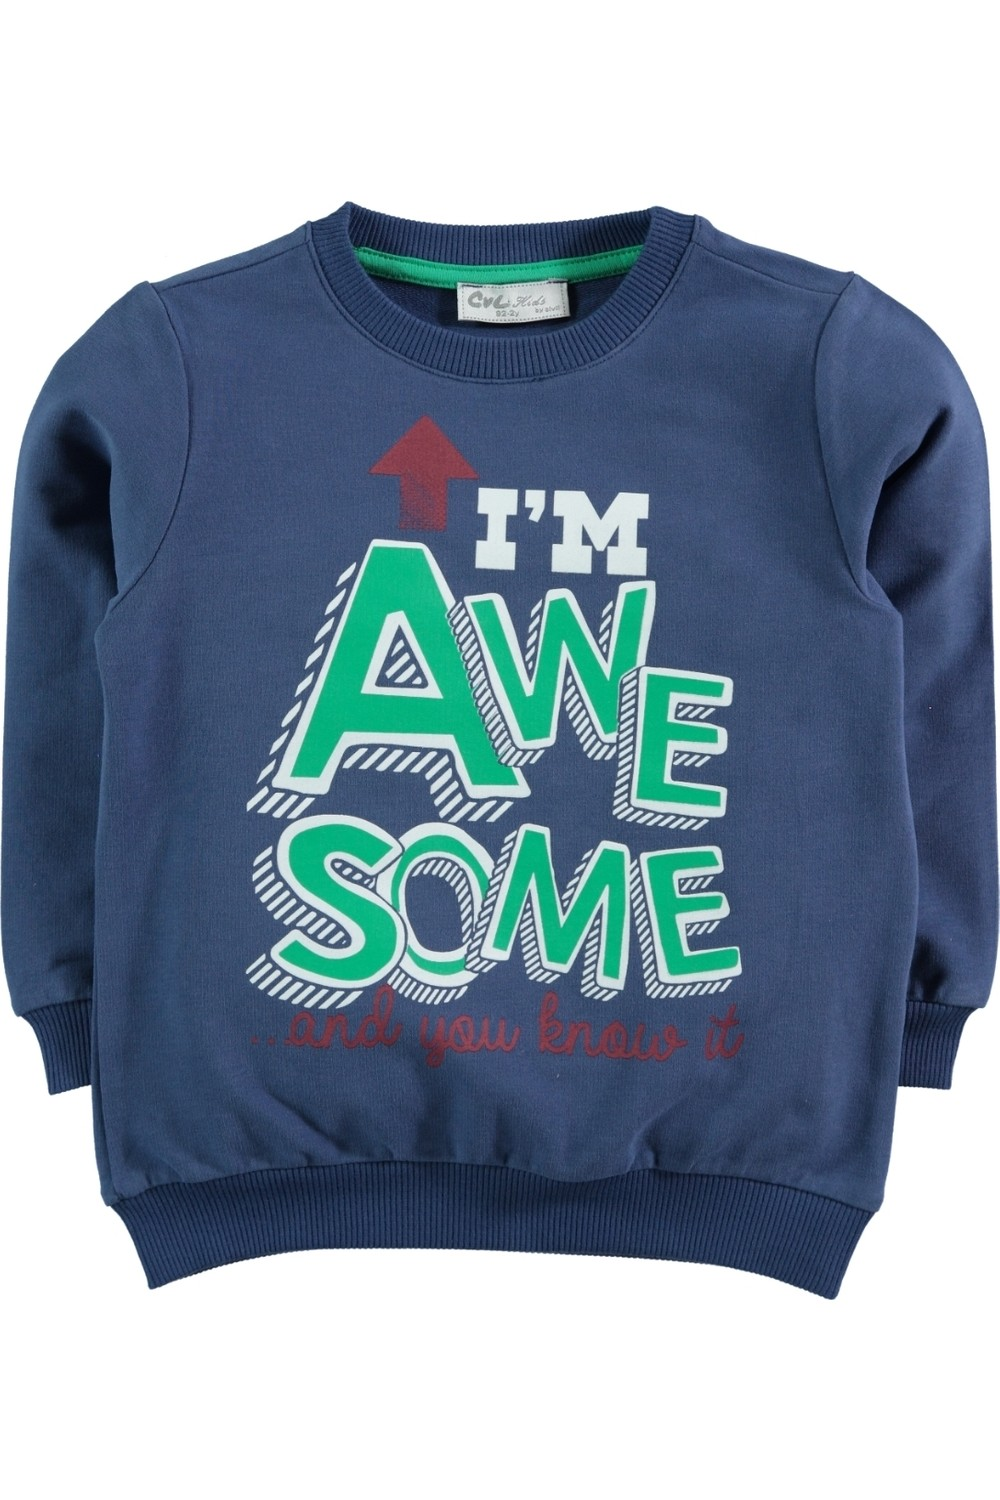 Civil Children's Sweater with Printed Details